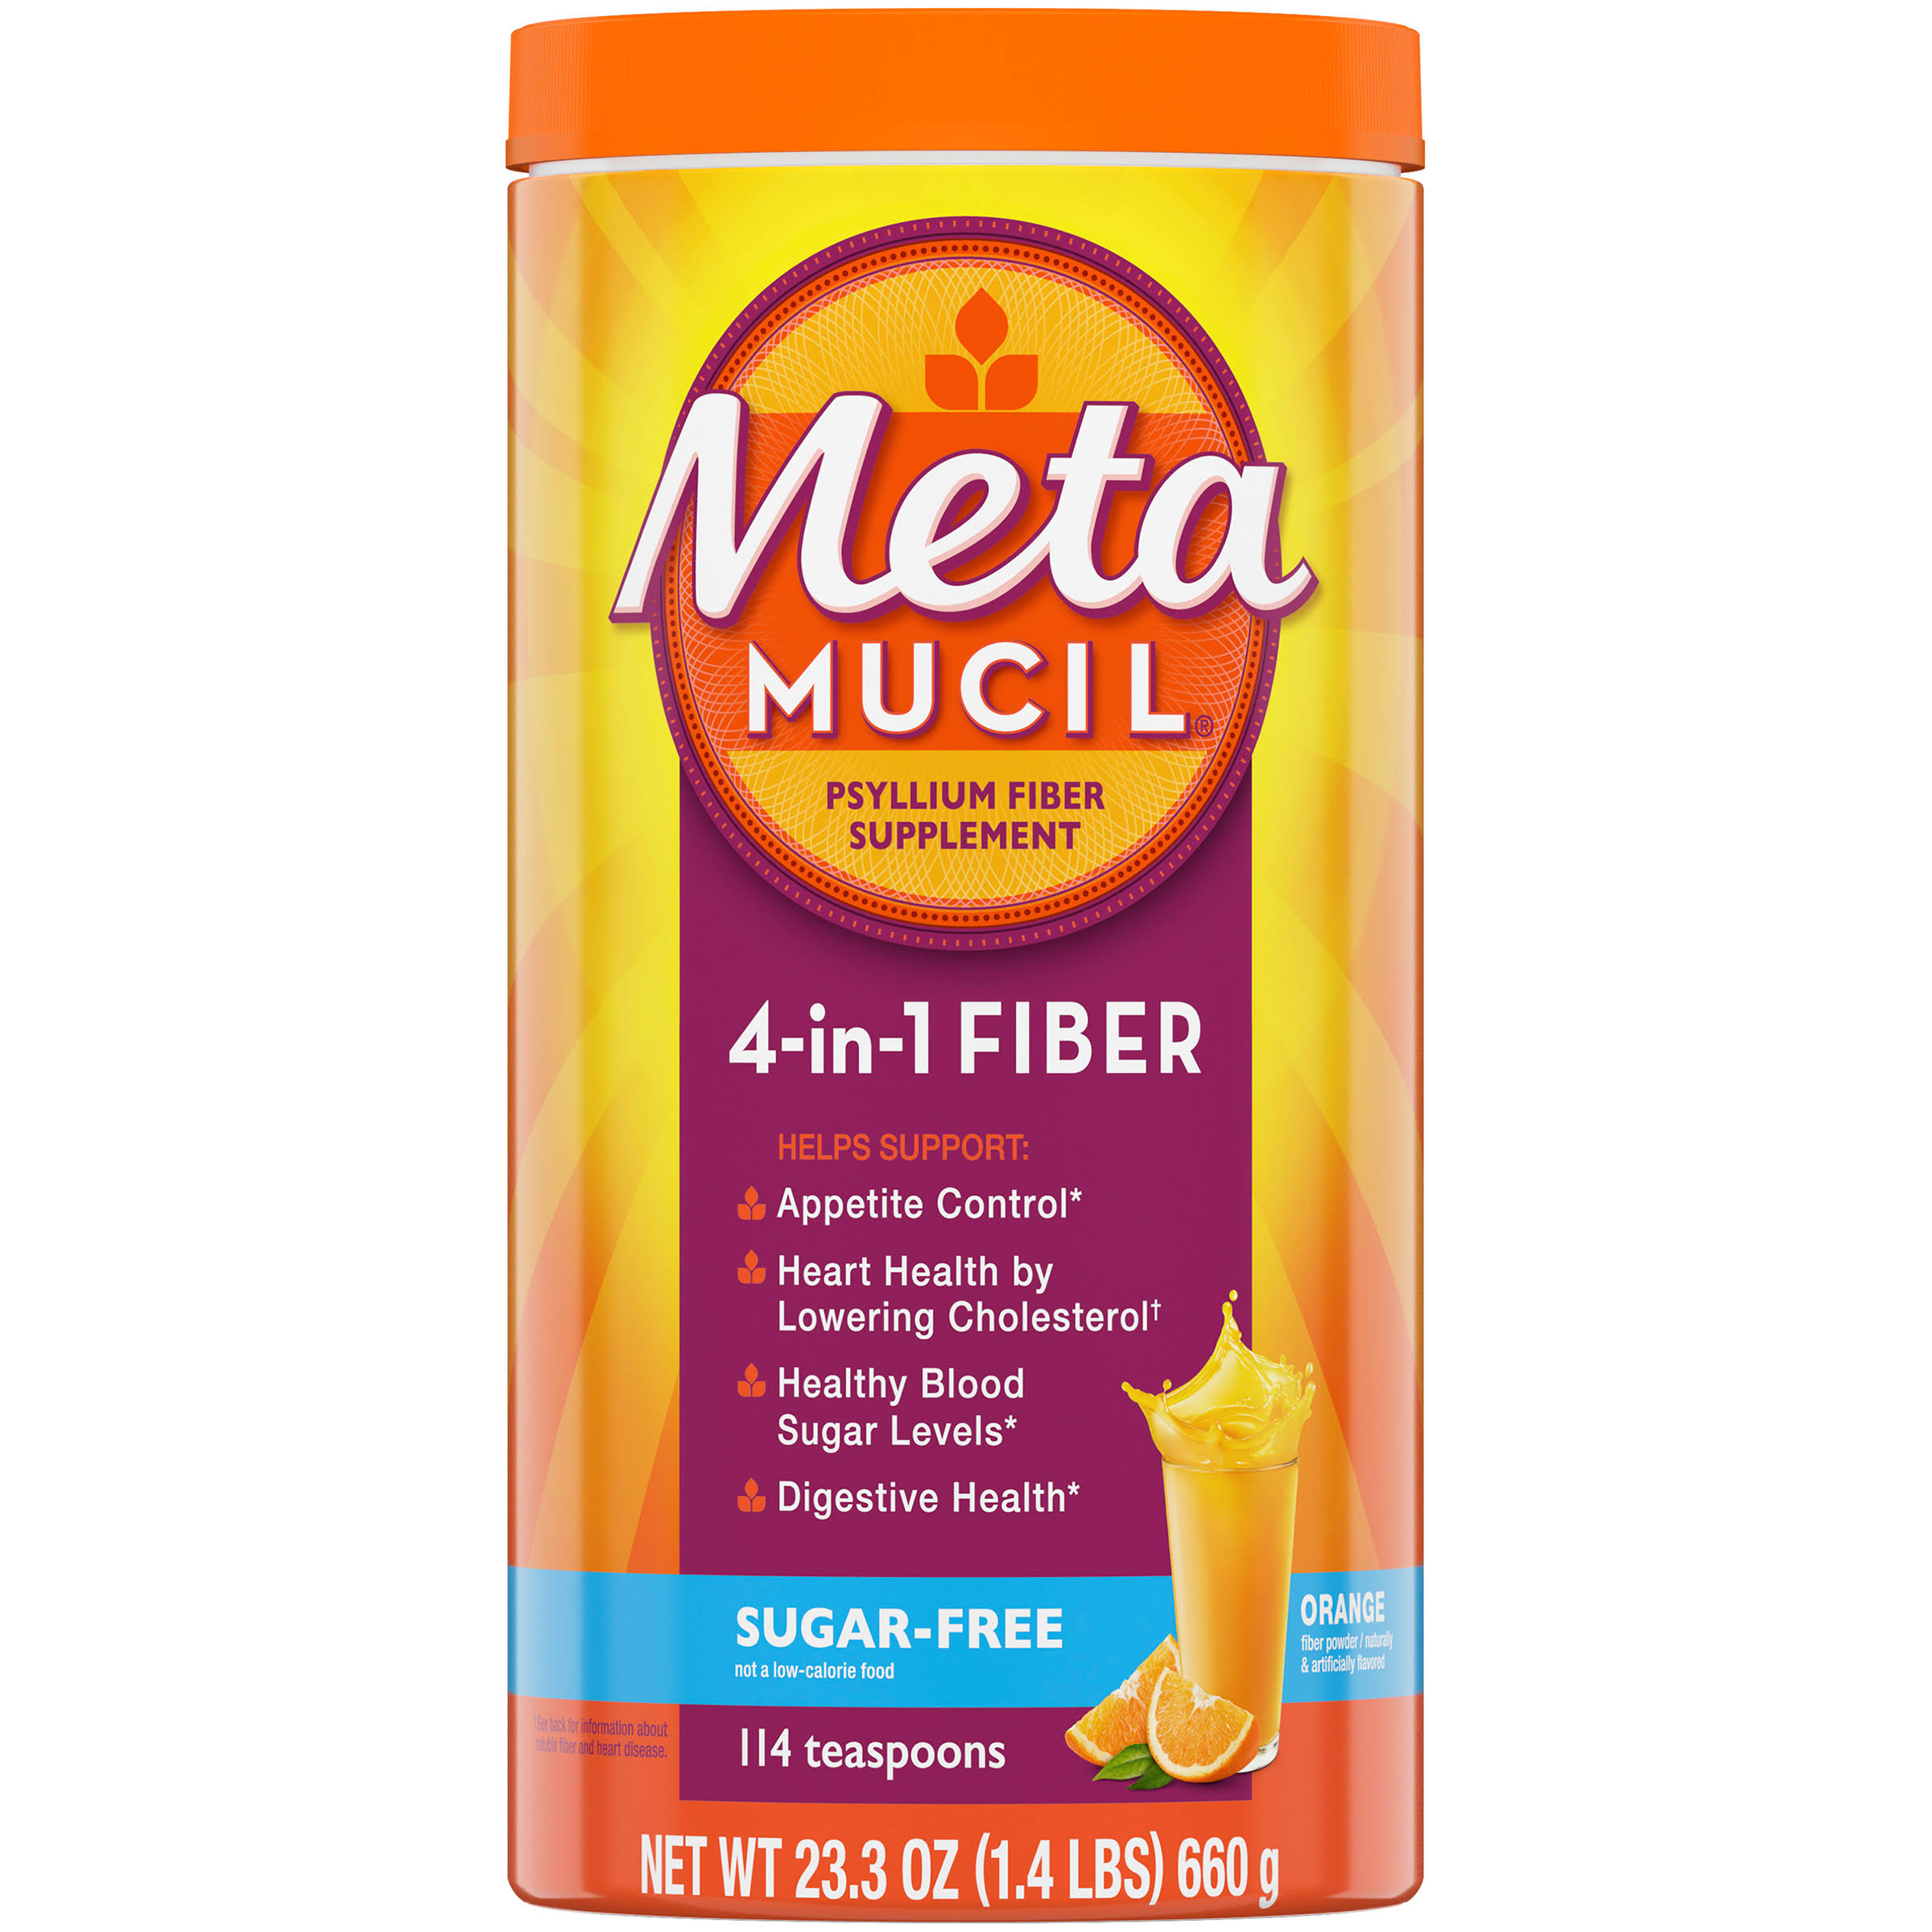 Metamucil 4 in 1 Multi Health Fiber Sugar-Free Fiber Powder - Orange Smooth, 23.3oz